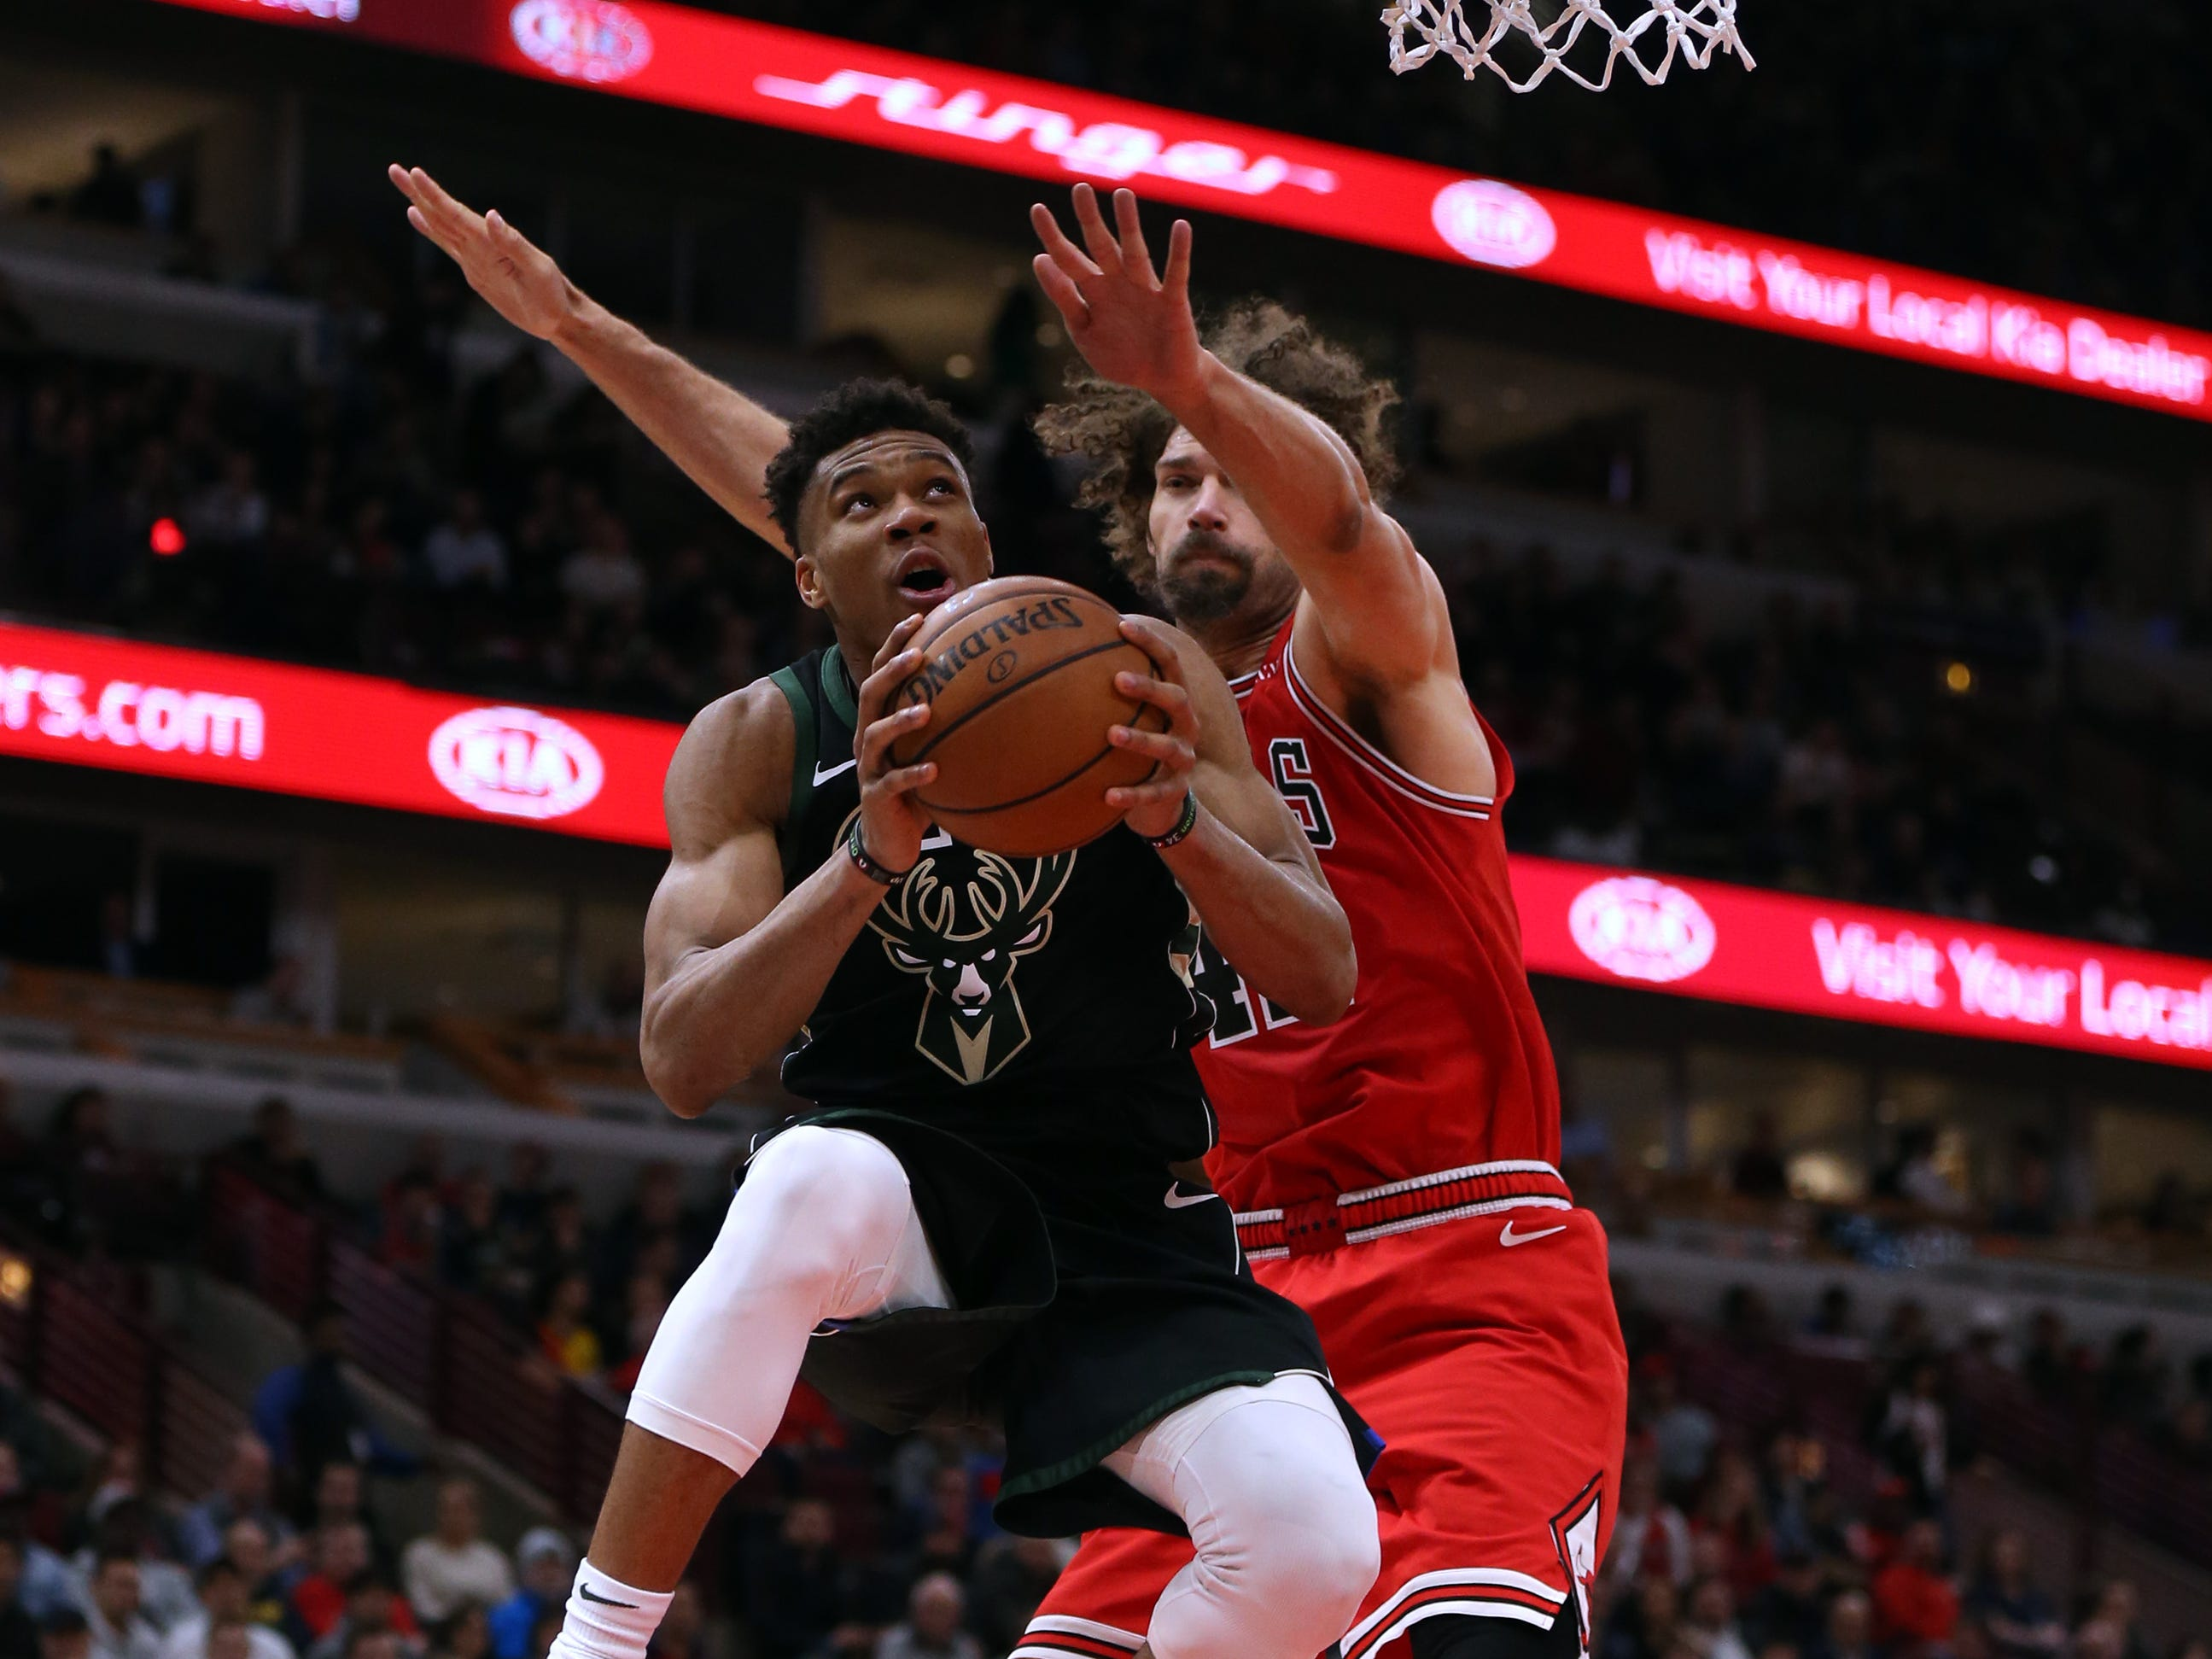 Bucks forward Giannis Antetokounmpo drives to the basket as Bulls center Robin Lopez defends him during the first half Monday.